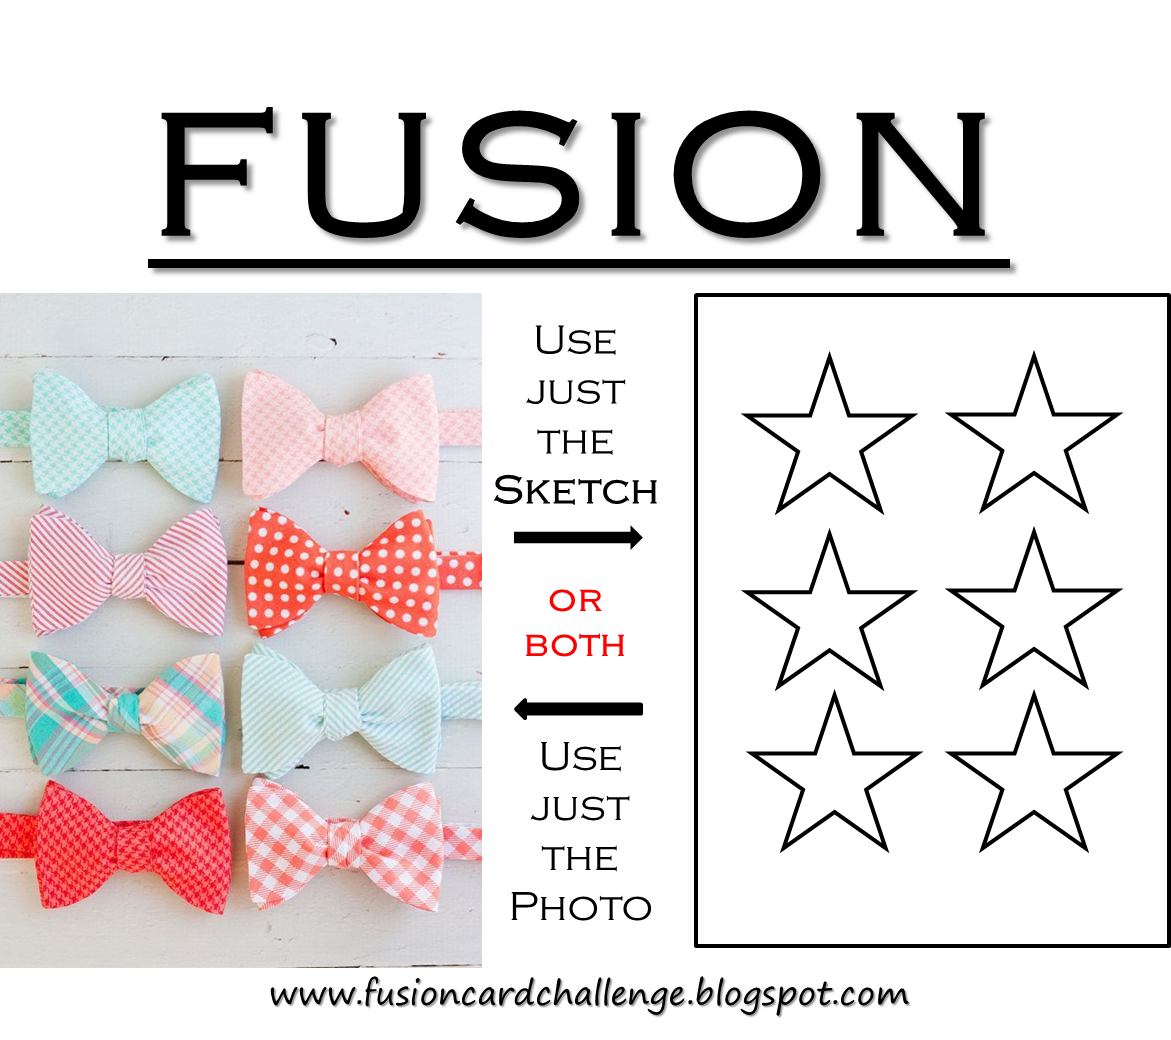 http://fusioncardchallenge.blogspot.com/2015/02/fusion-bowties-and-other-things.html